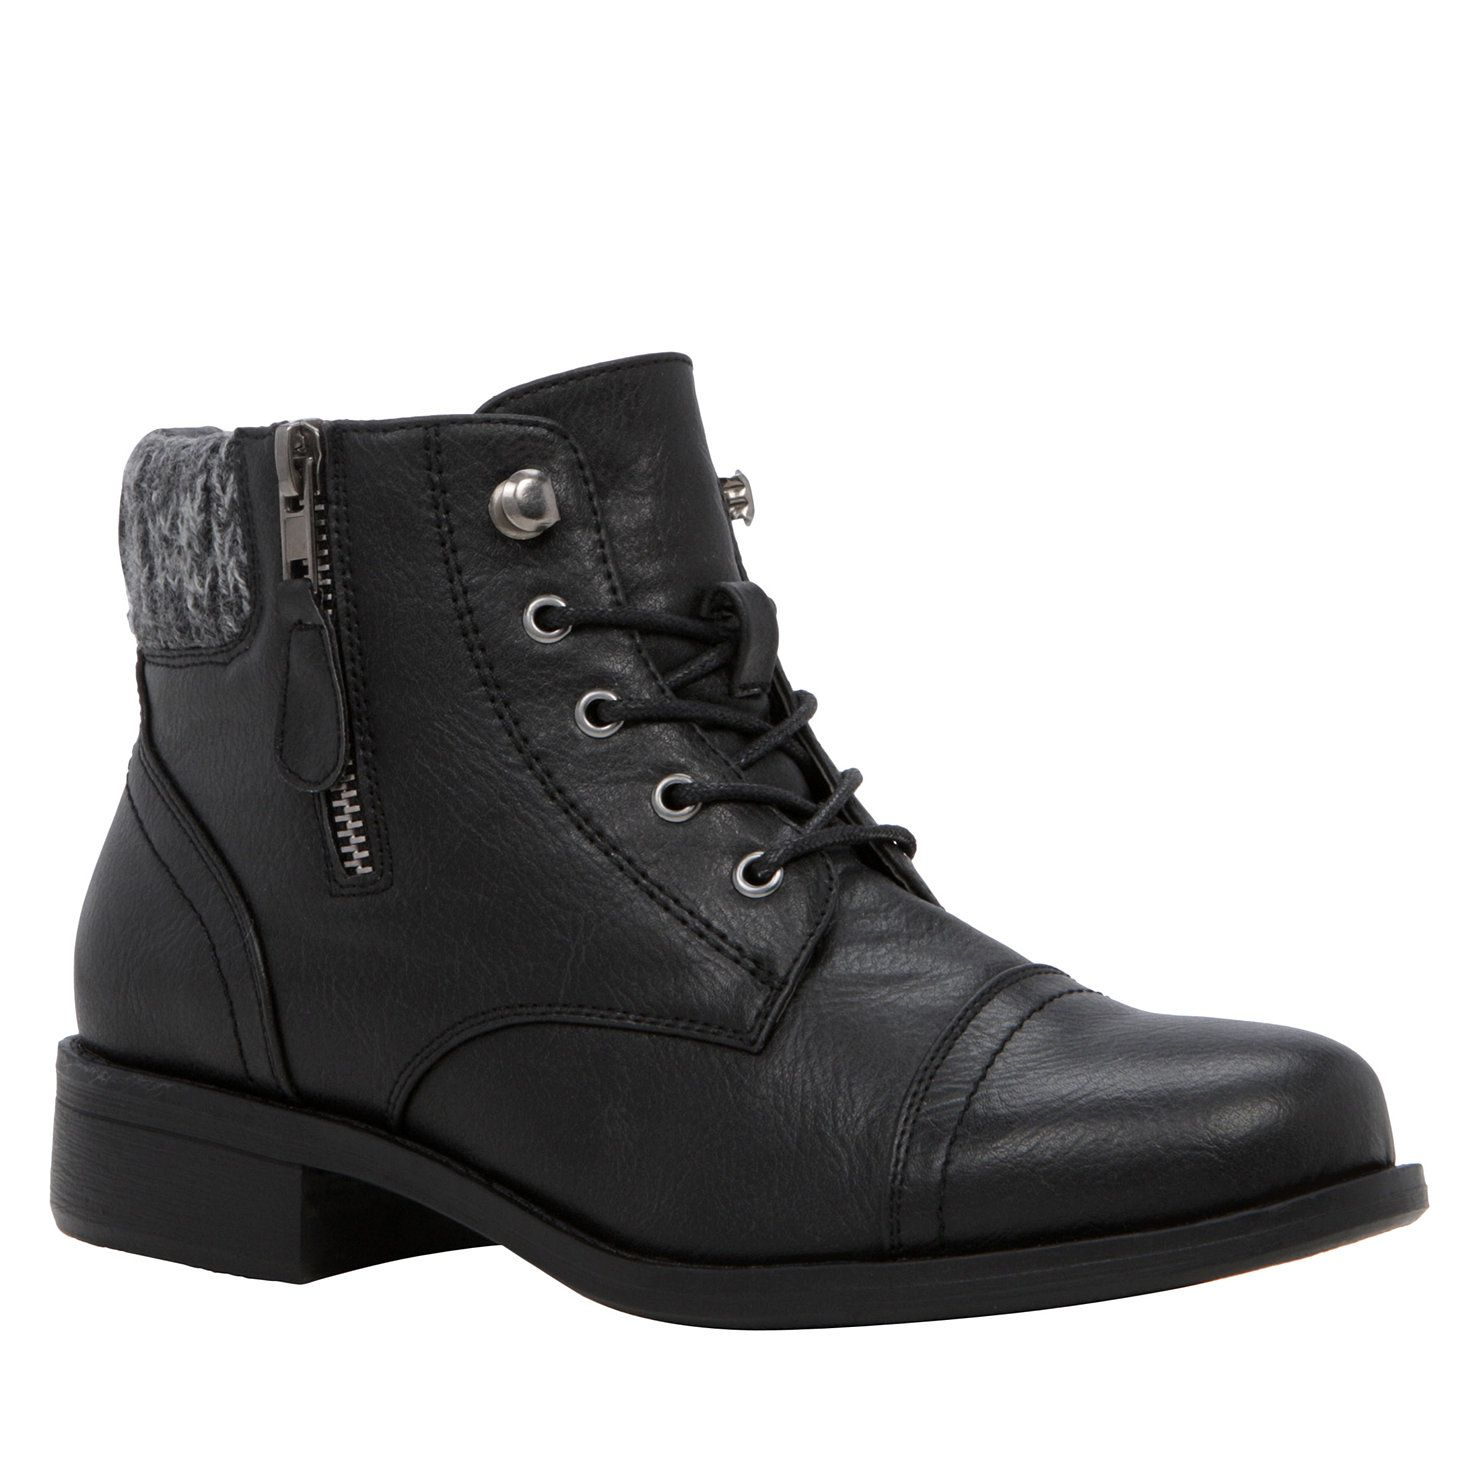 OGLIANO | Clearance Women's Ankle Boots | Callitspring.com